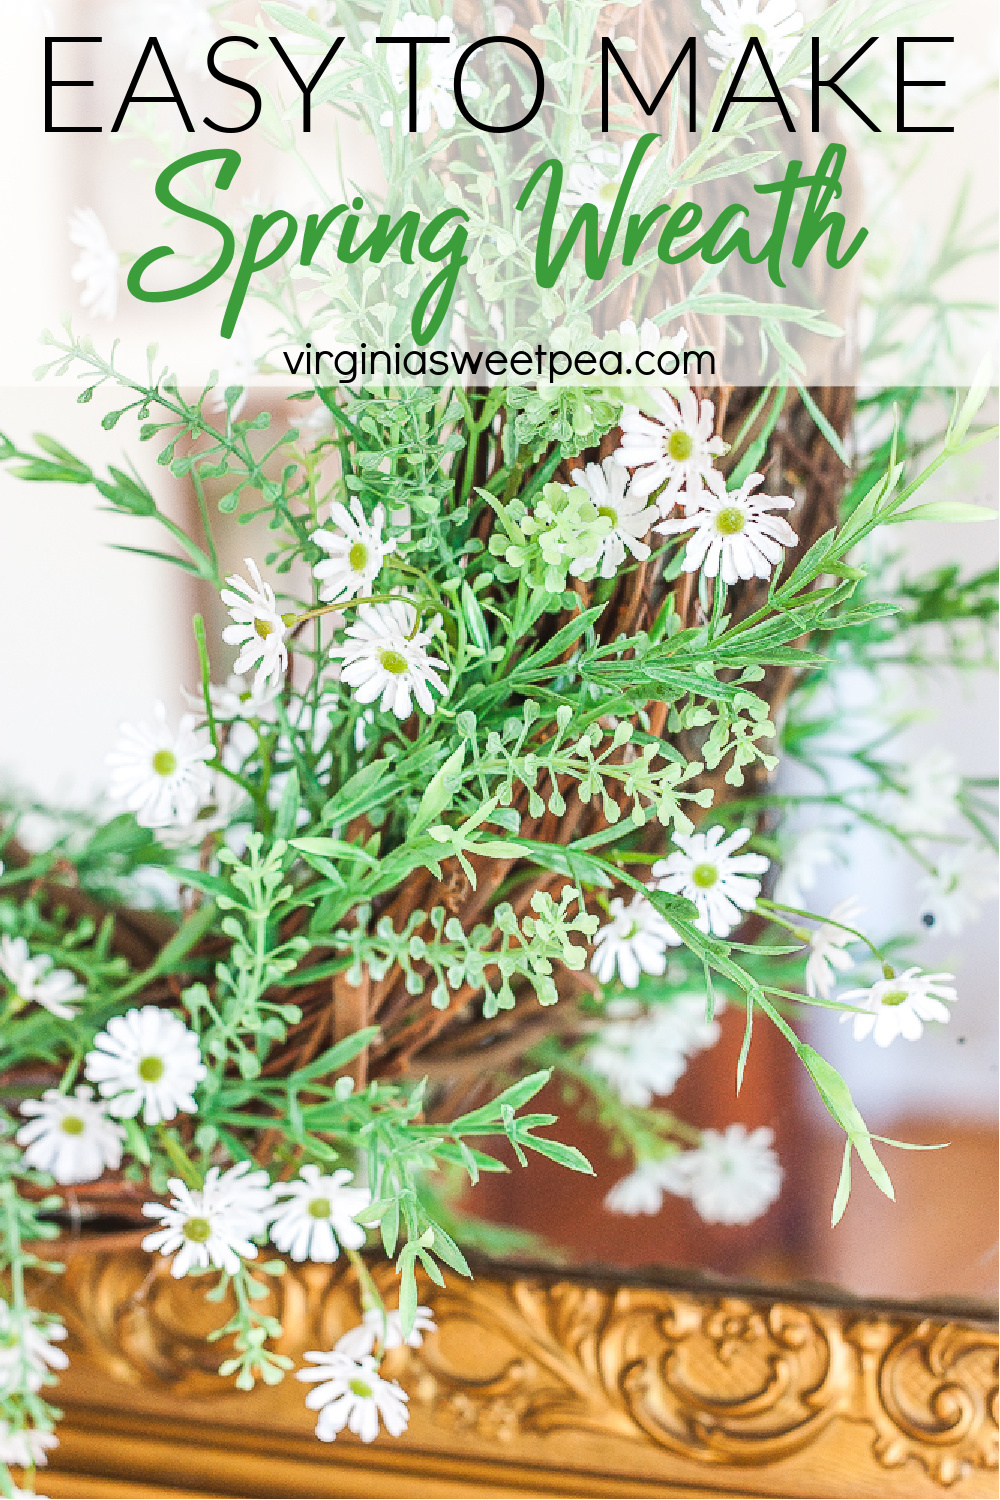 Looking for ideas for how to make a spring wreath?  This beautiful wreath is super simple to make and it looks great hanging over a mantel, on a mirror, or on a door.  Follow the step-by-step tutorial to make a wreath like this for your home. via @spaula